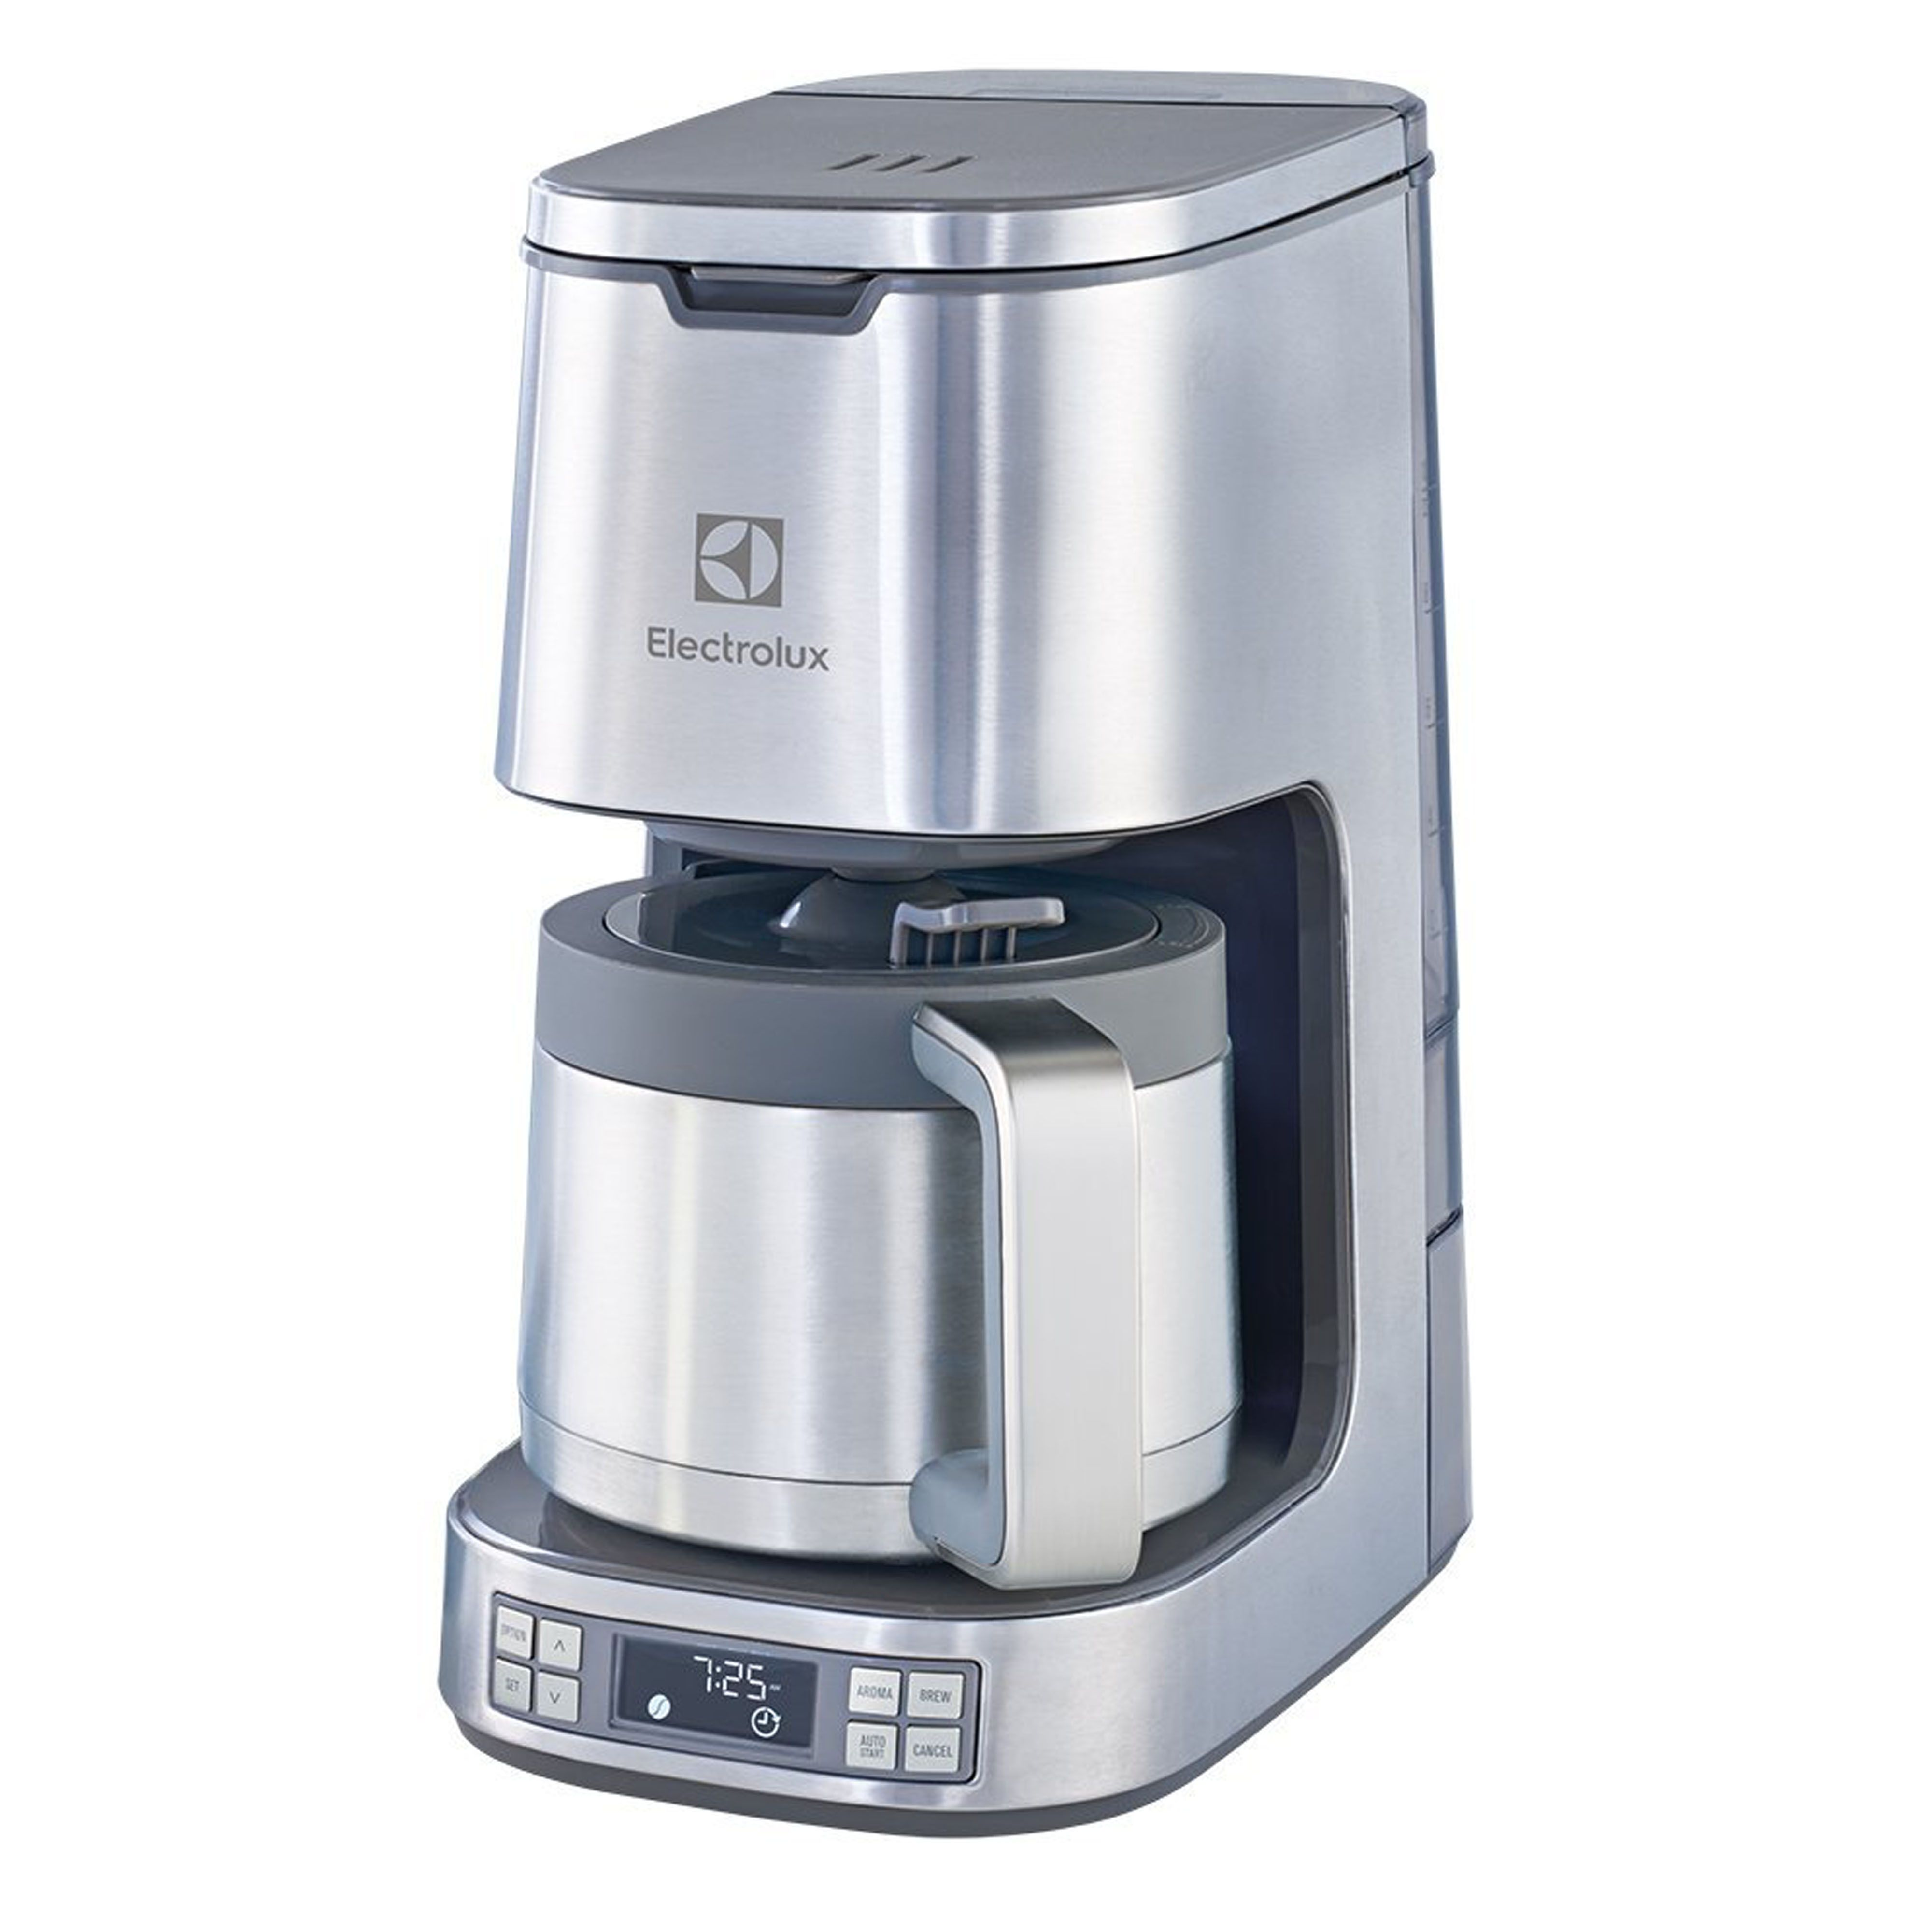 Electrolux Expressionist Thermal Coffeemaker Review, Price and Features